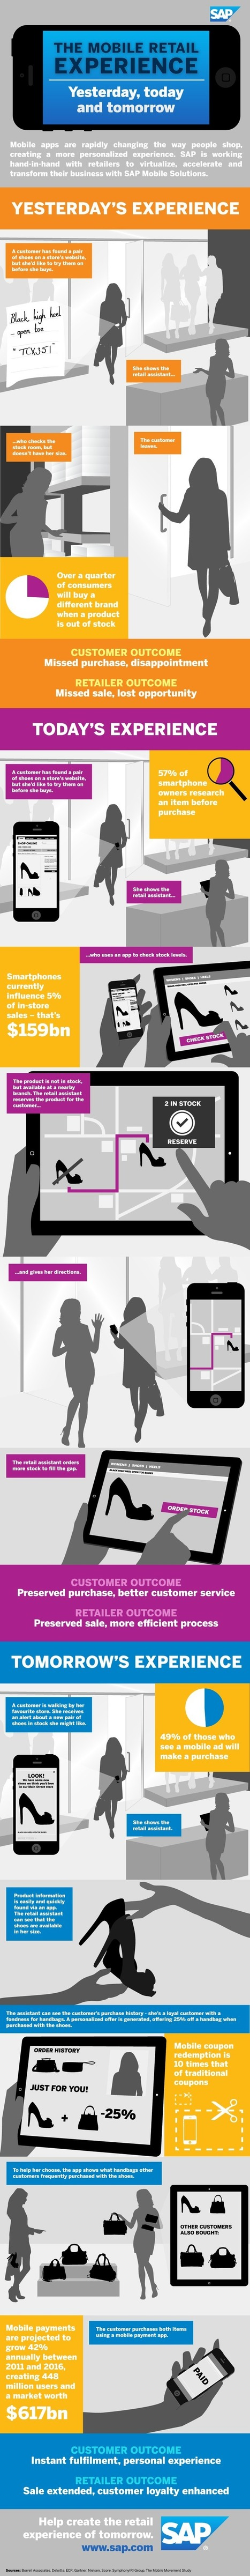 The Mobile Retail Experience [Infographic] | telescope | Scoop.it